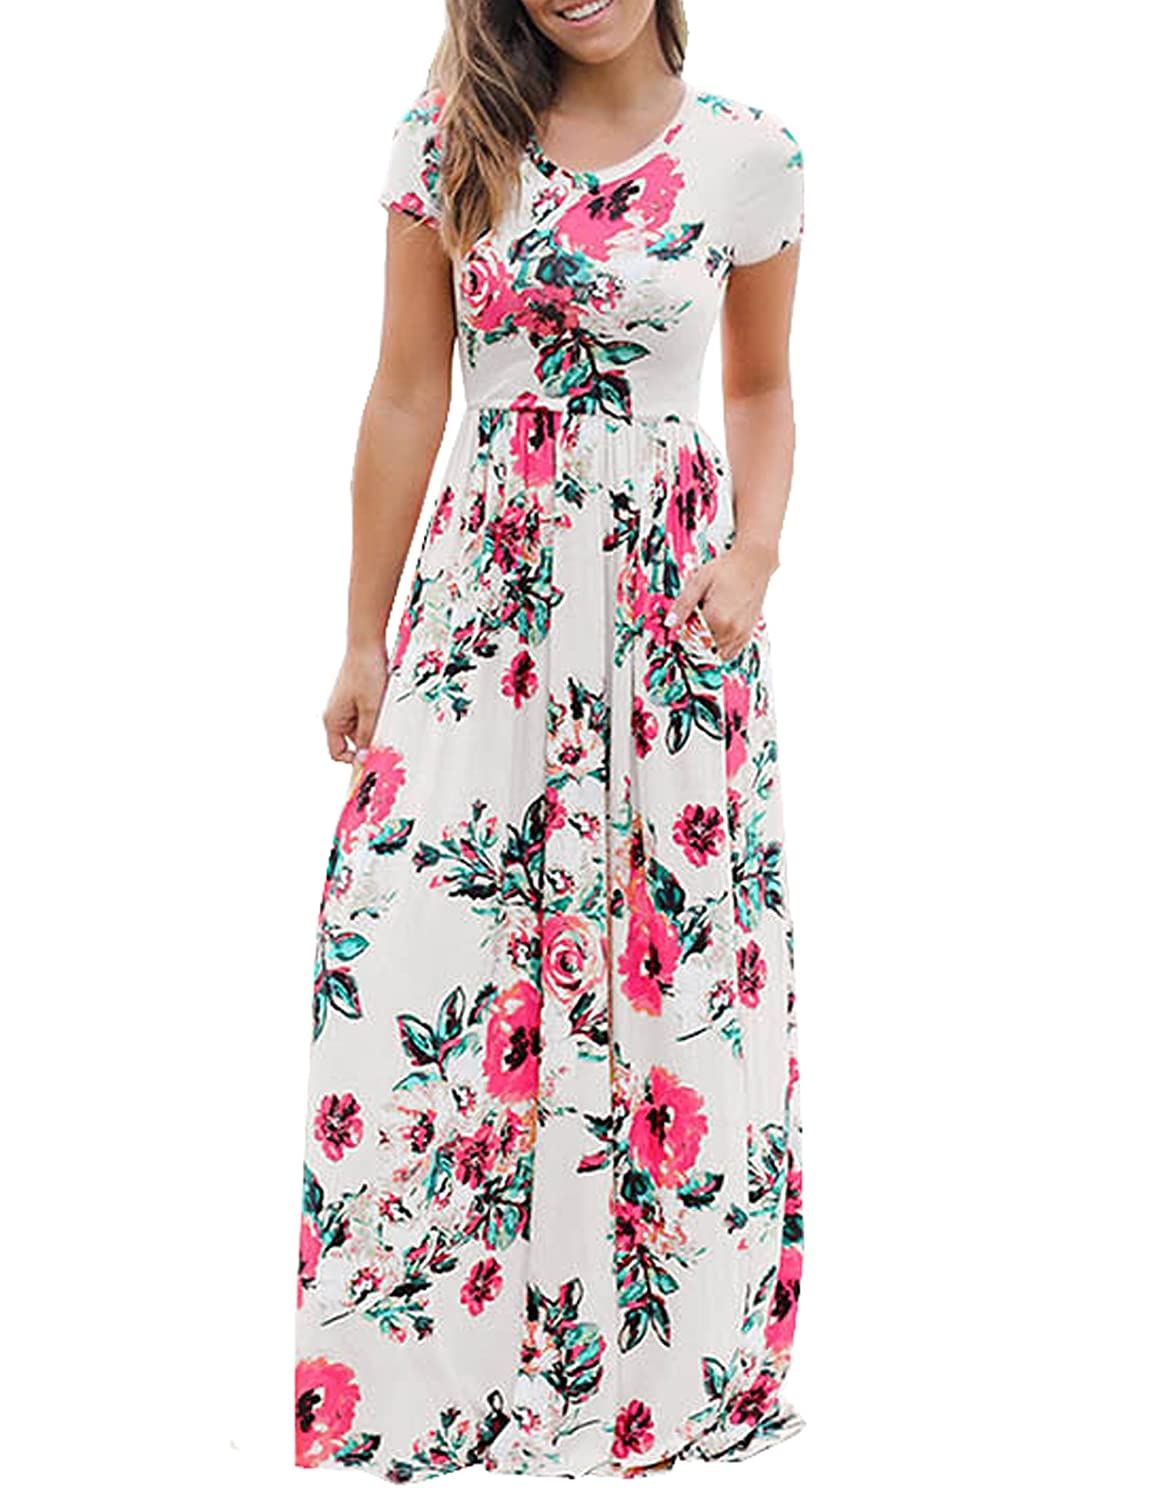 0d92c49923 Murimia Women's Floral Print Short Sleeve Empire Flower Maxi Casual Dress  with Pocketed at Amazon Women's Clothing store: